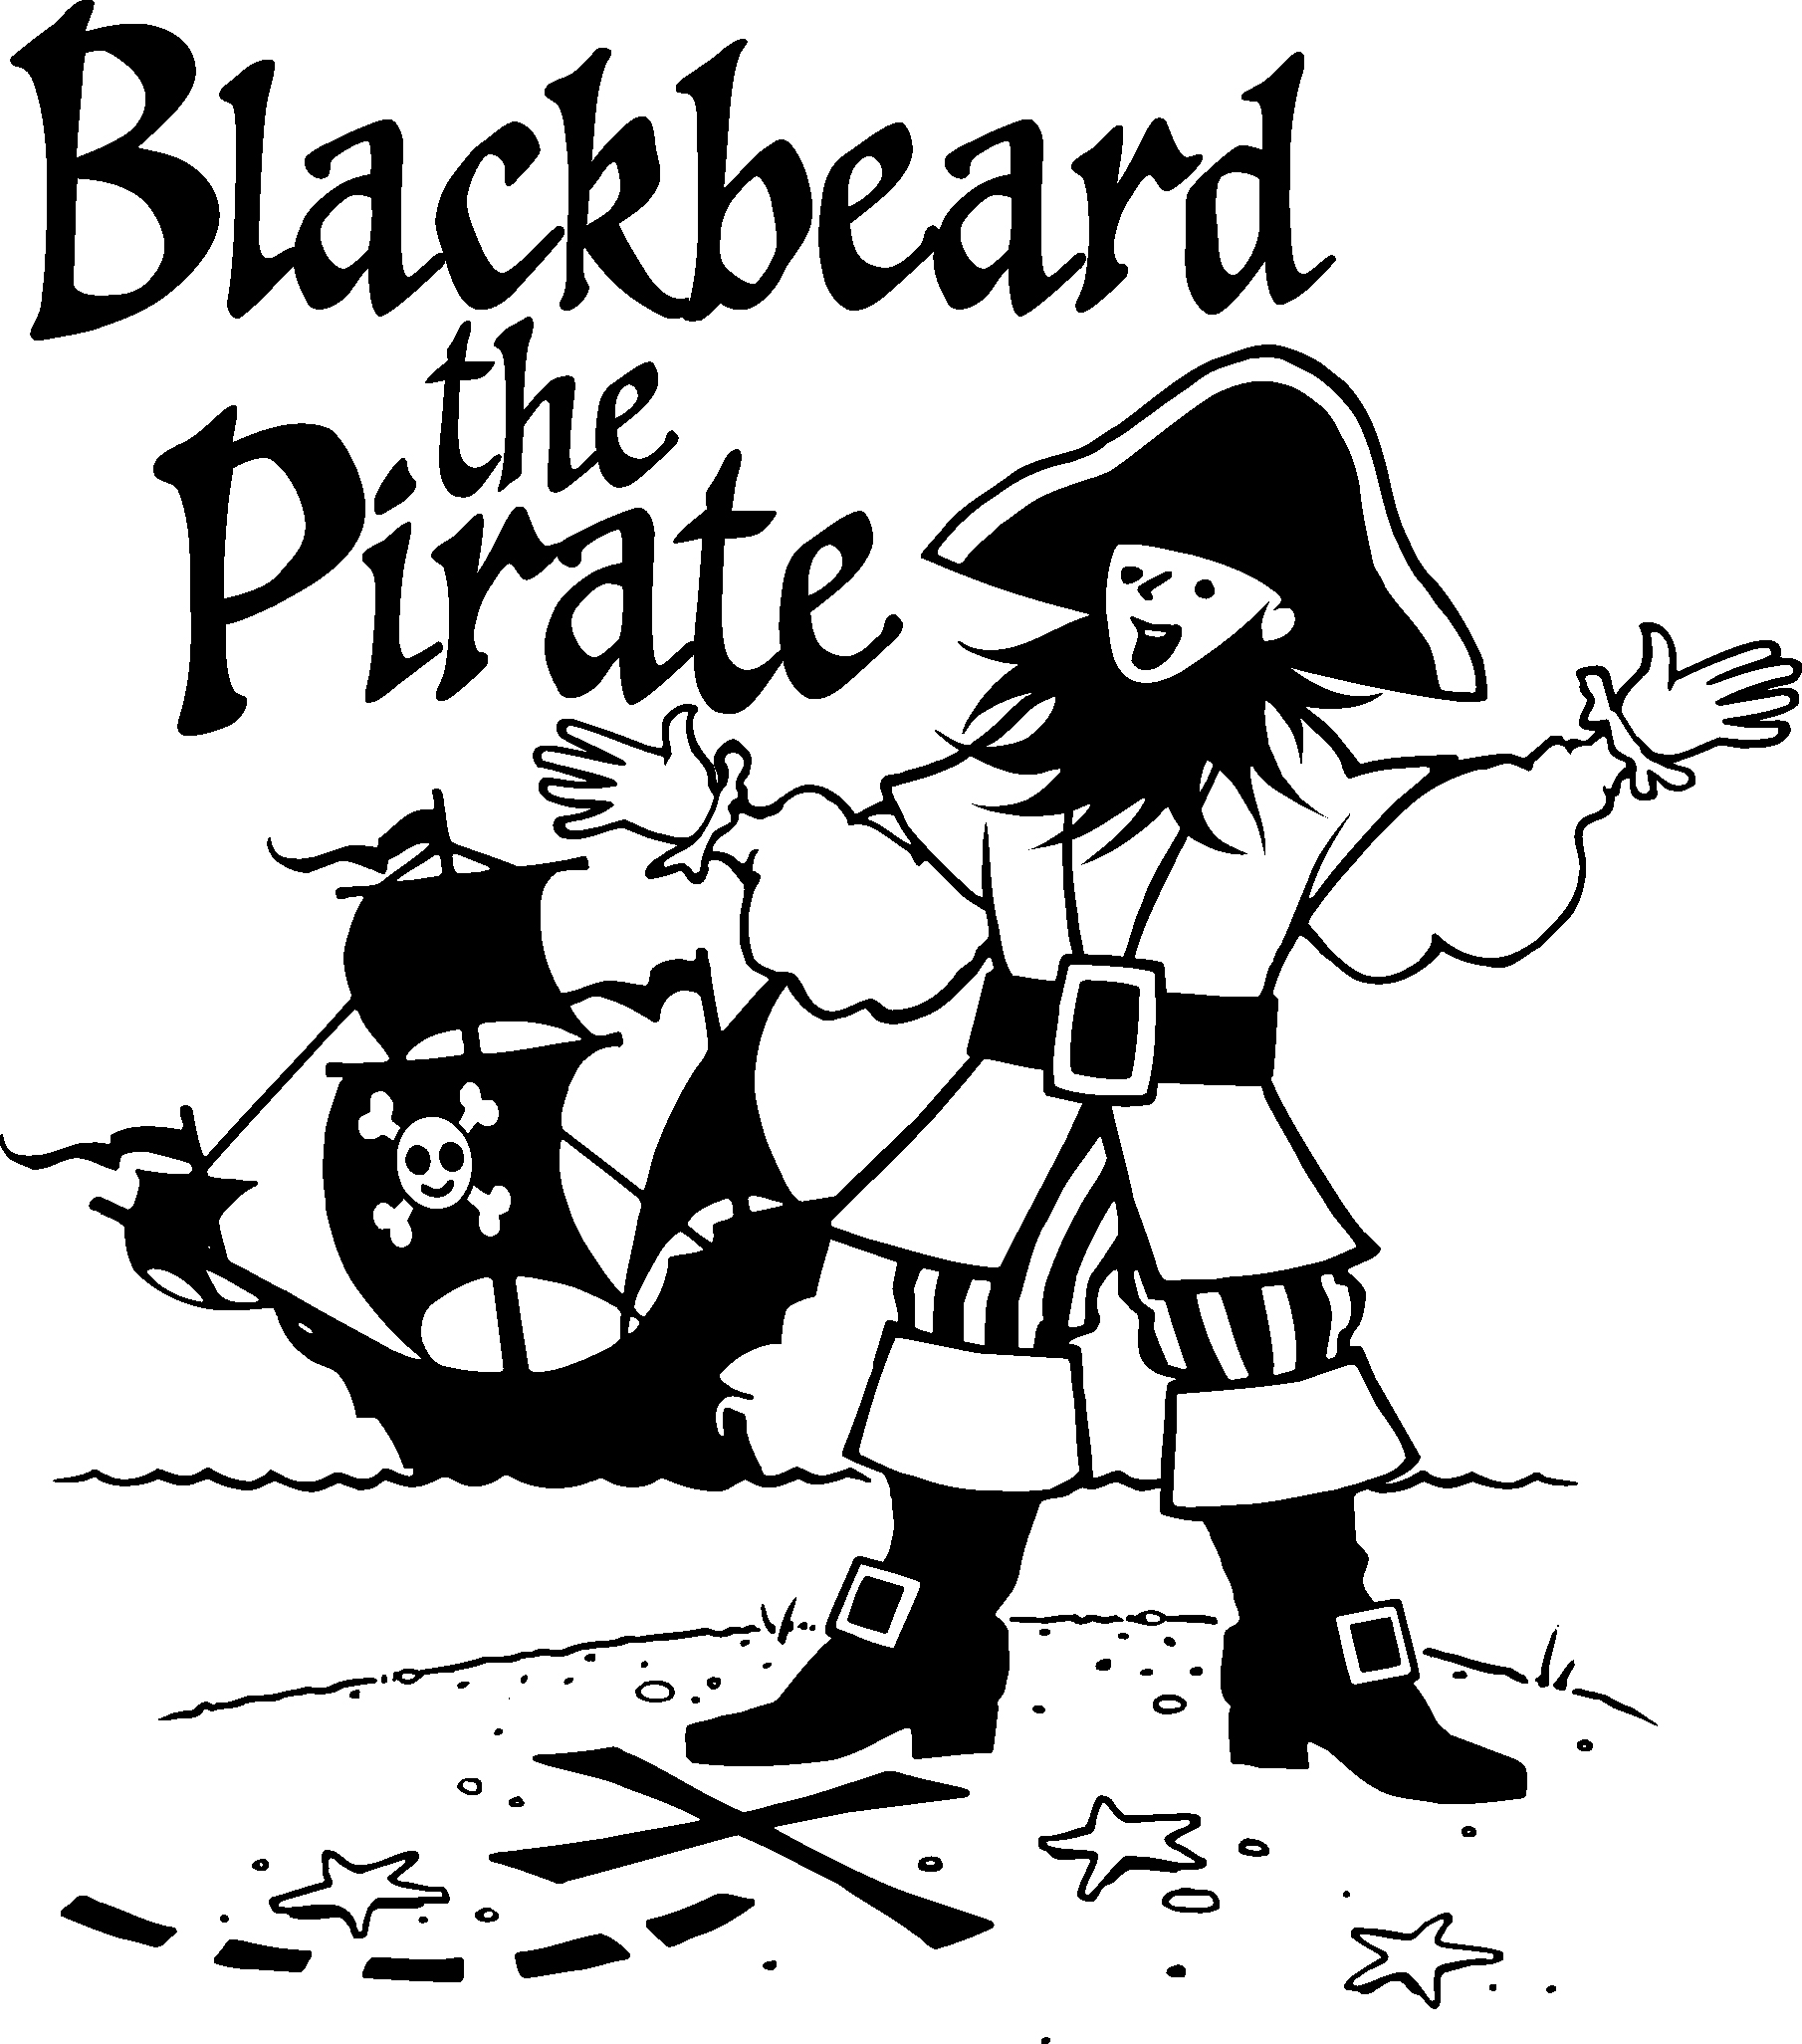 Blackbeard The Pirate Presenter Materials